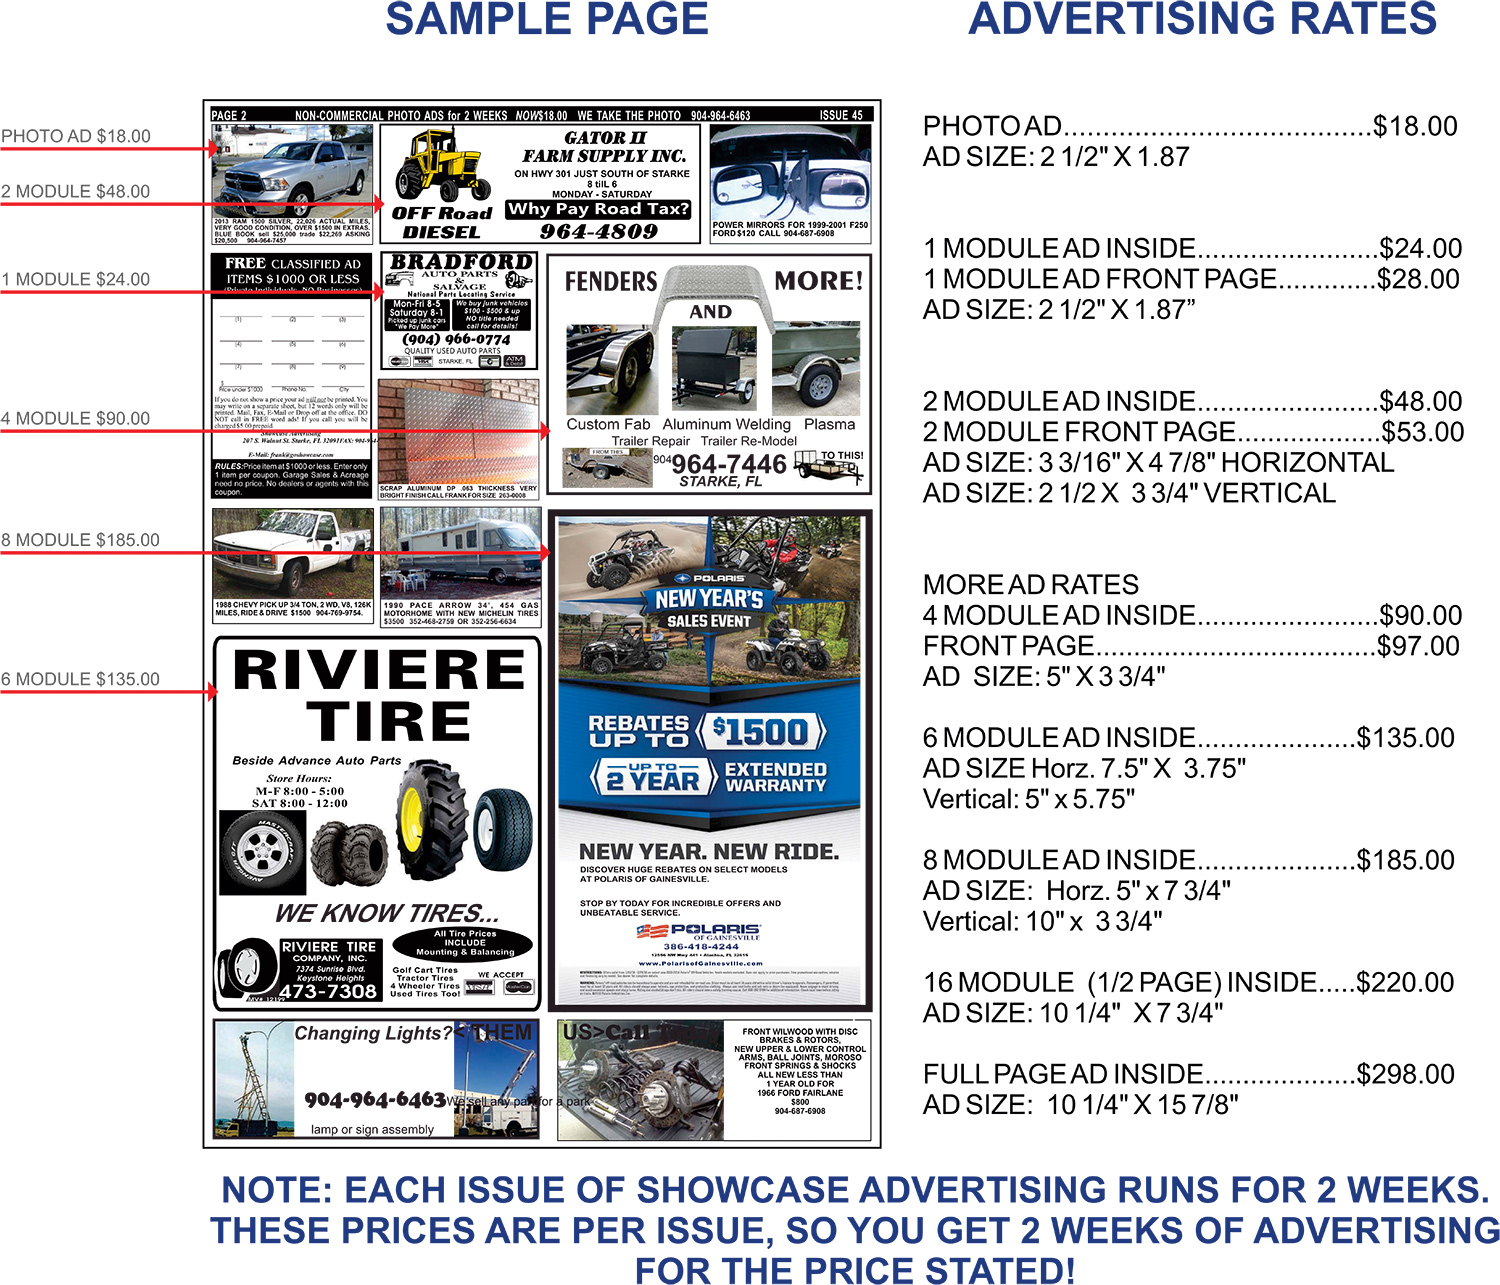 Advertising Rates - Click to Enlarge